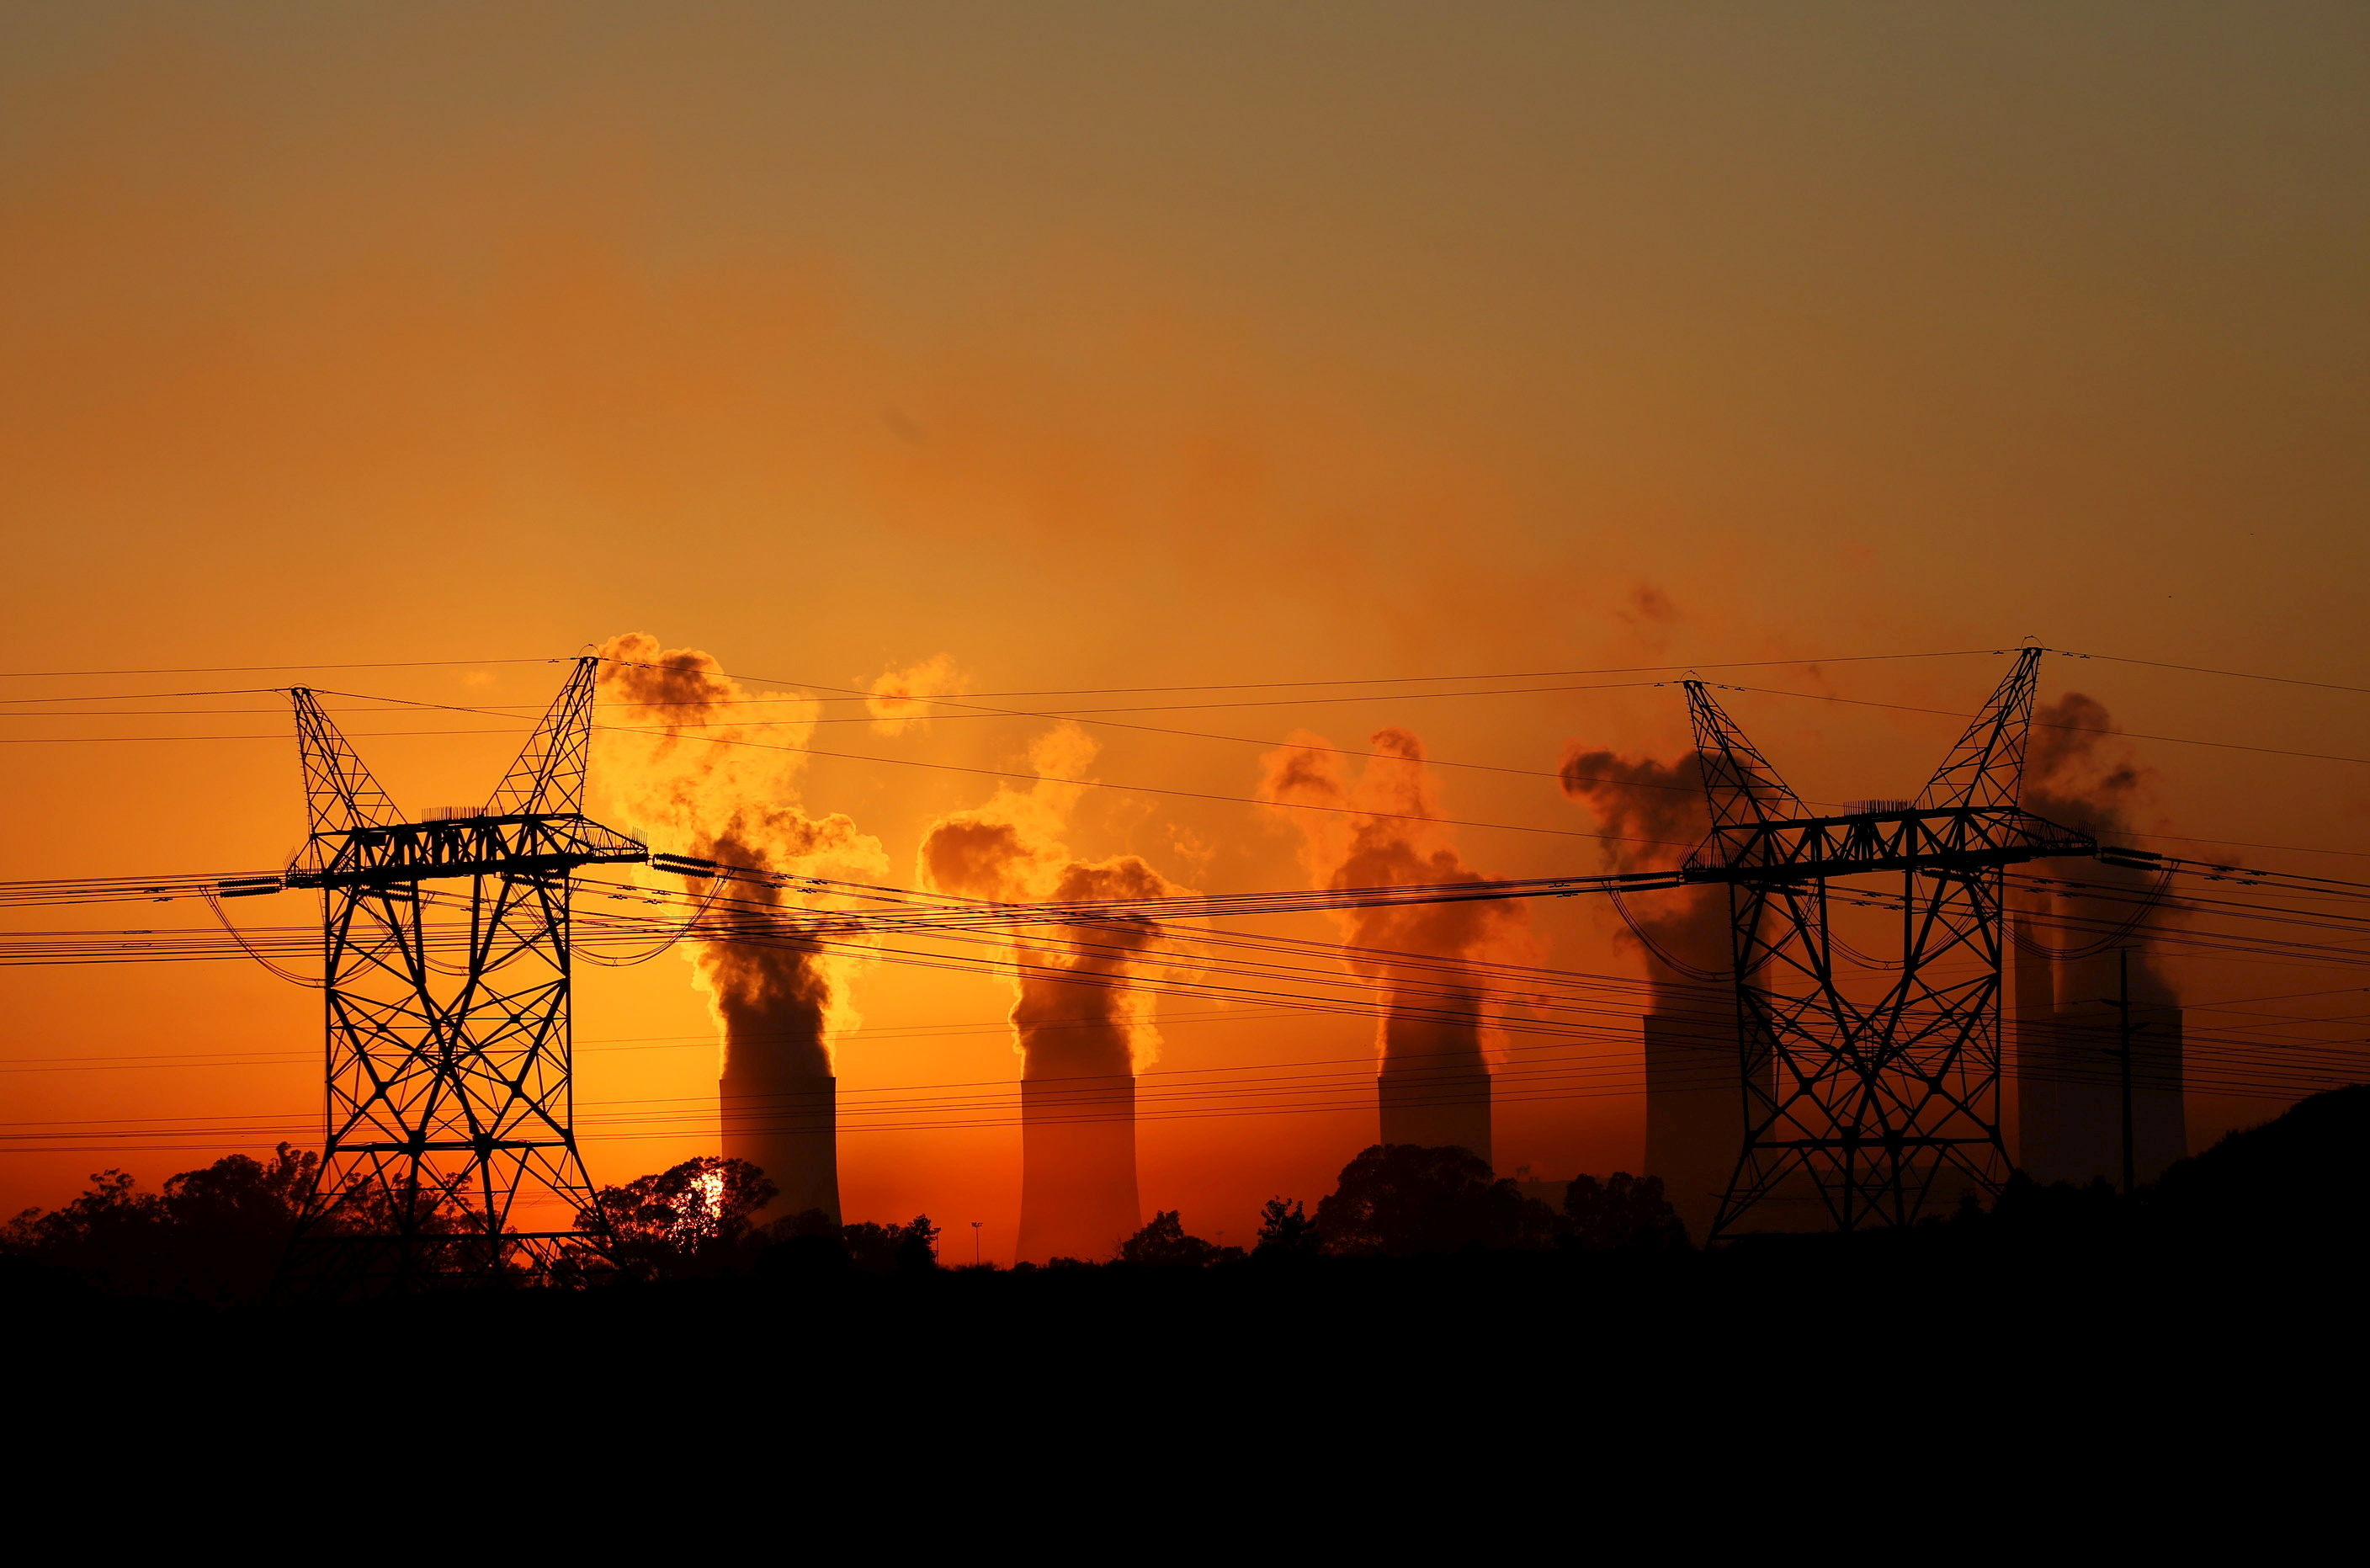 Electricity pylons are seen in front of the cooling towers at the Lethabo Thermal Power Station,an Eskom coal-burning power station near Sasolburg in the northern Free State province, March 2, 2016. REUTERS/Siphiwe Sibeko/File Photo